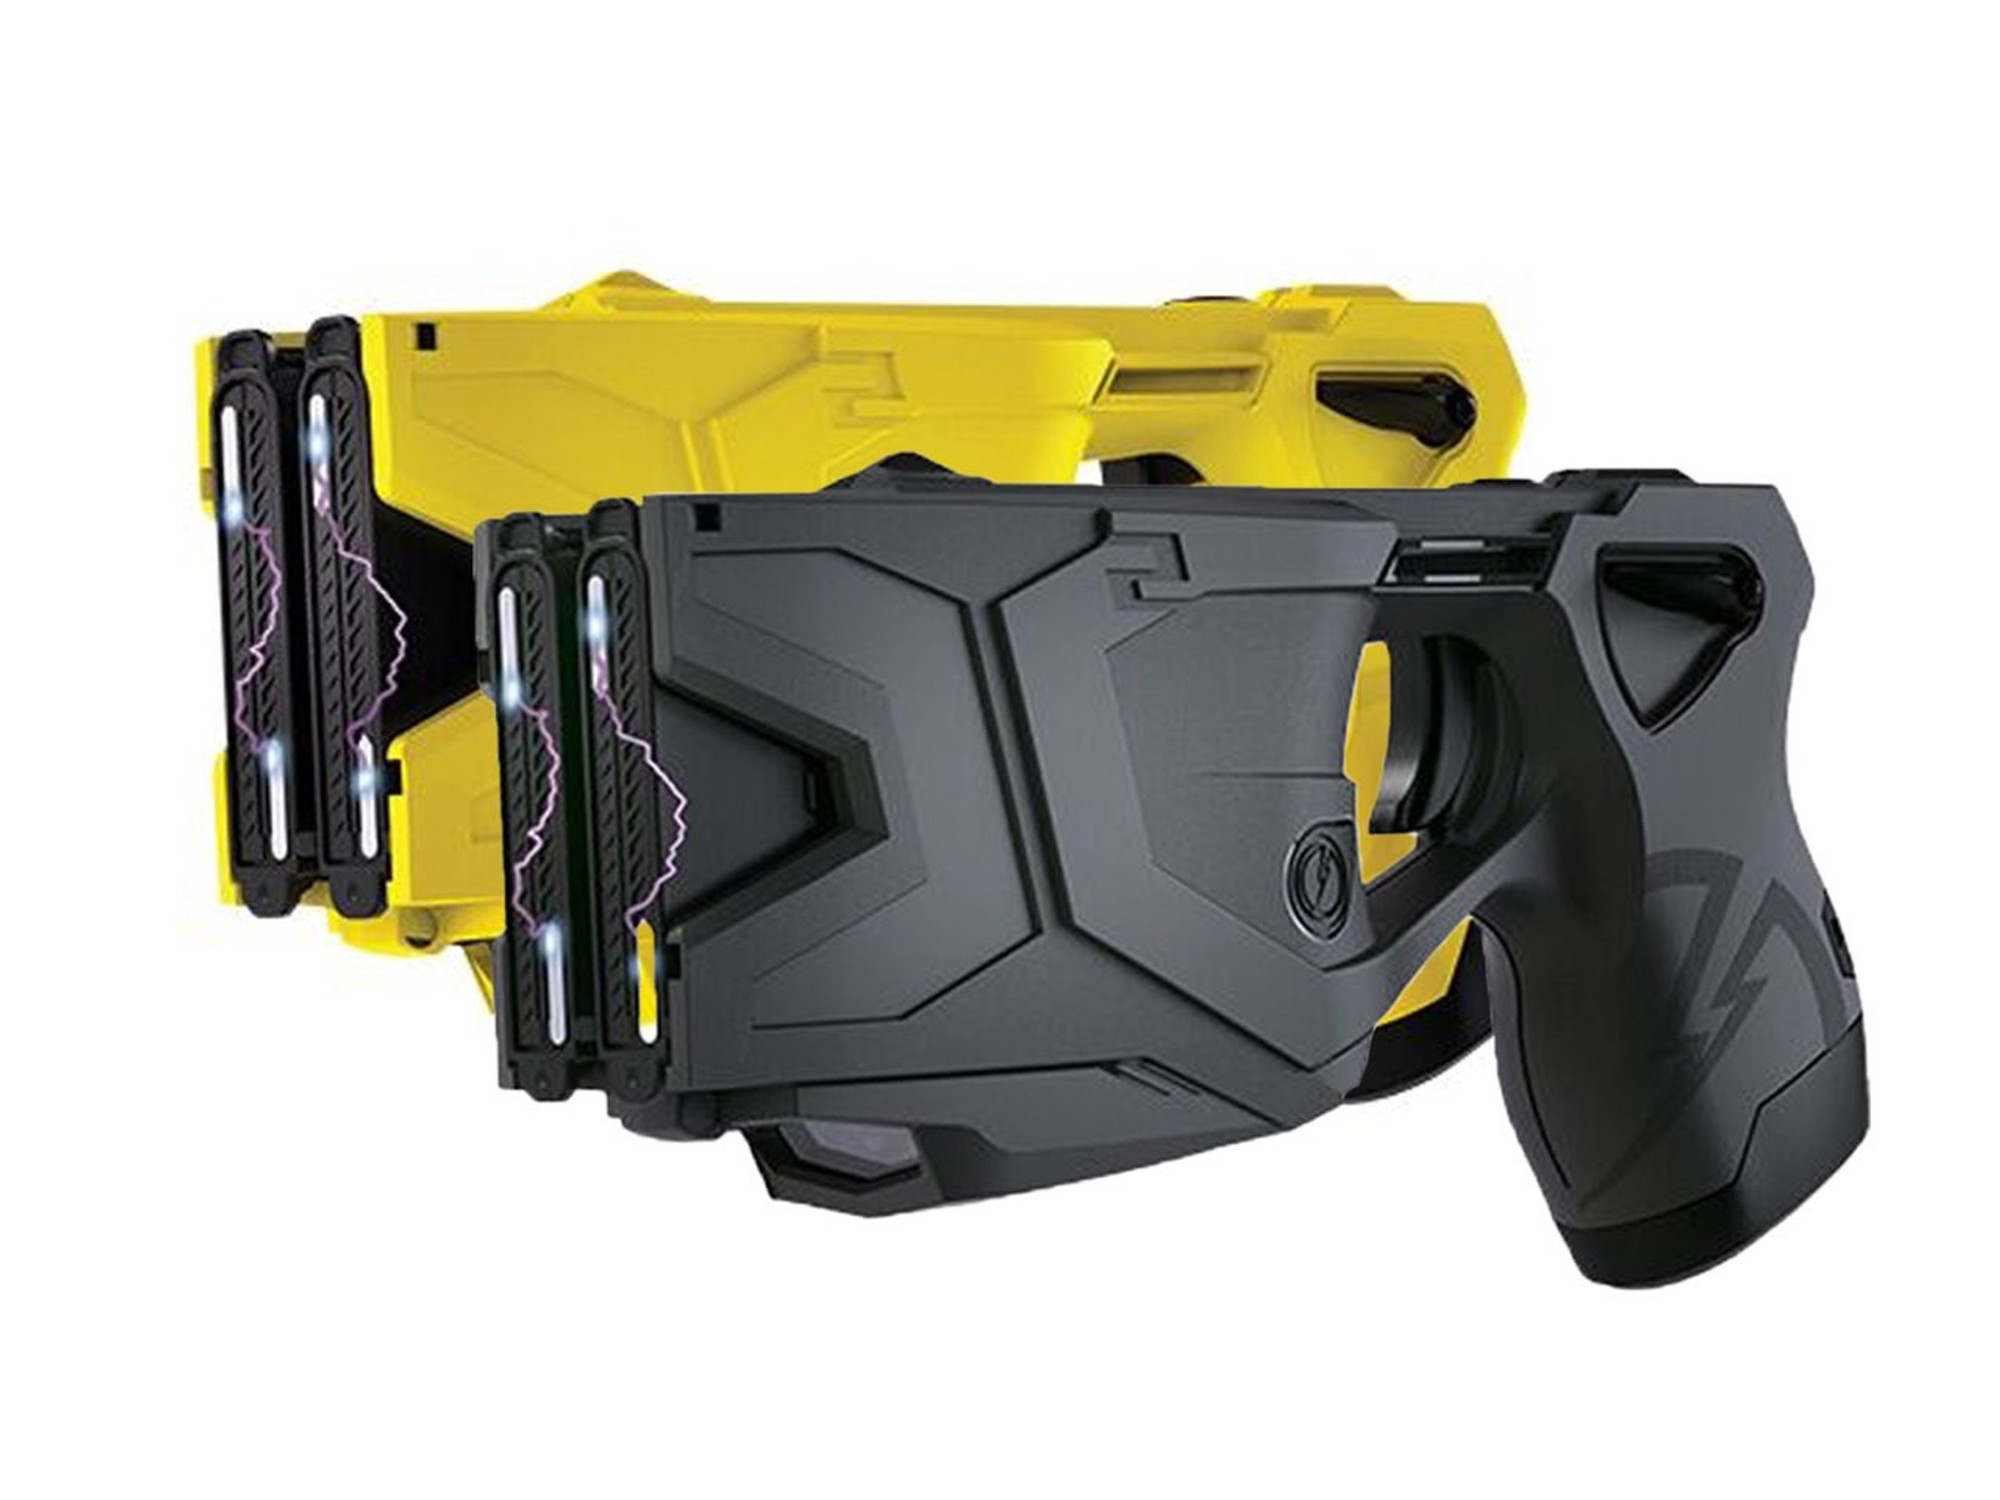 Taser X Defender Kit